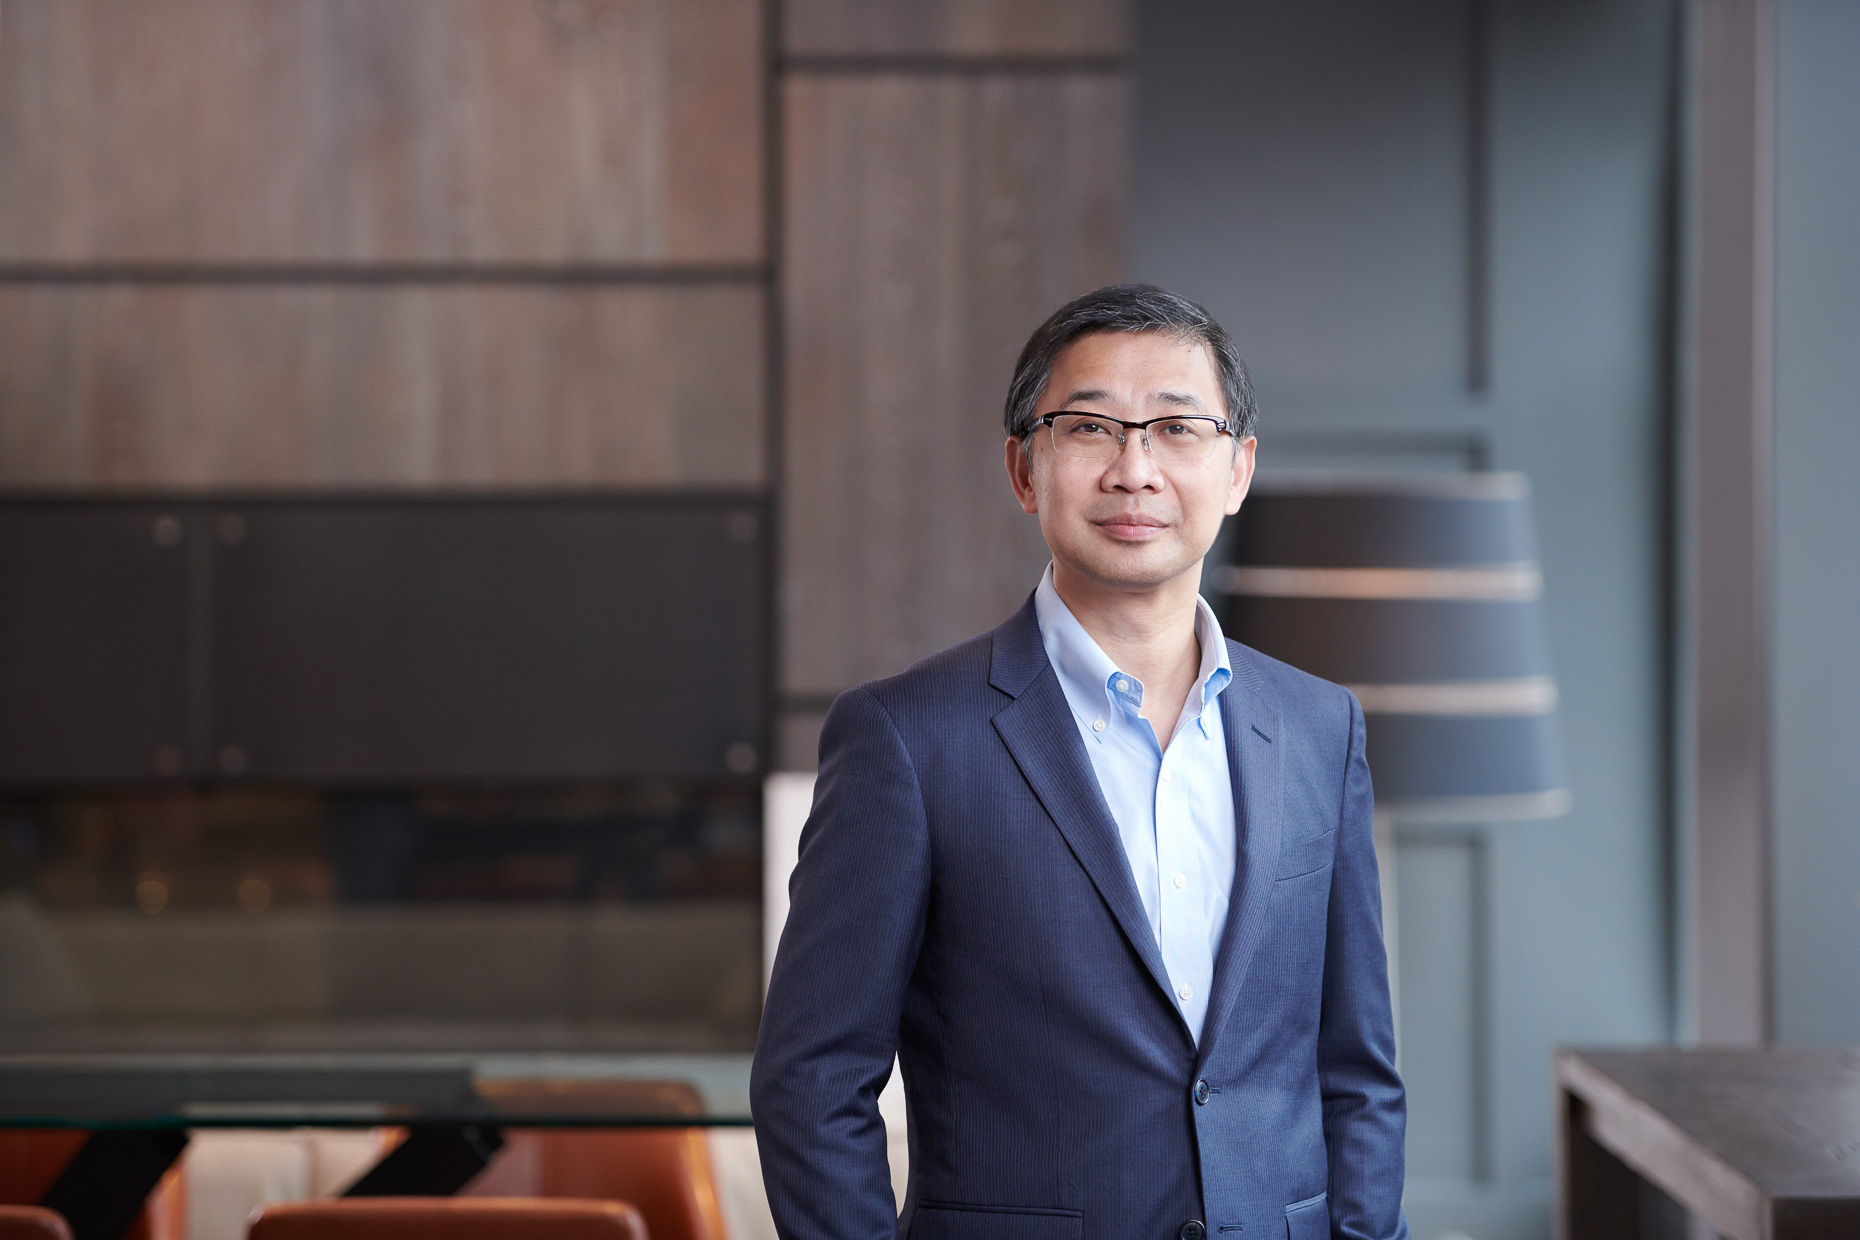 David Liu | Clarivate Corporate | Philadelphia Photographer